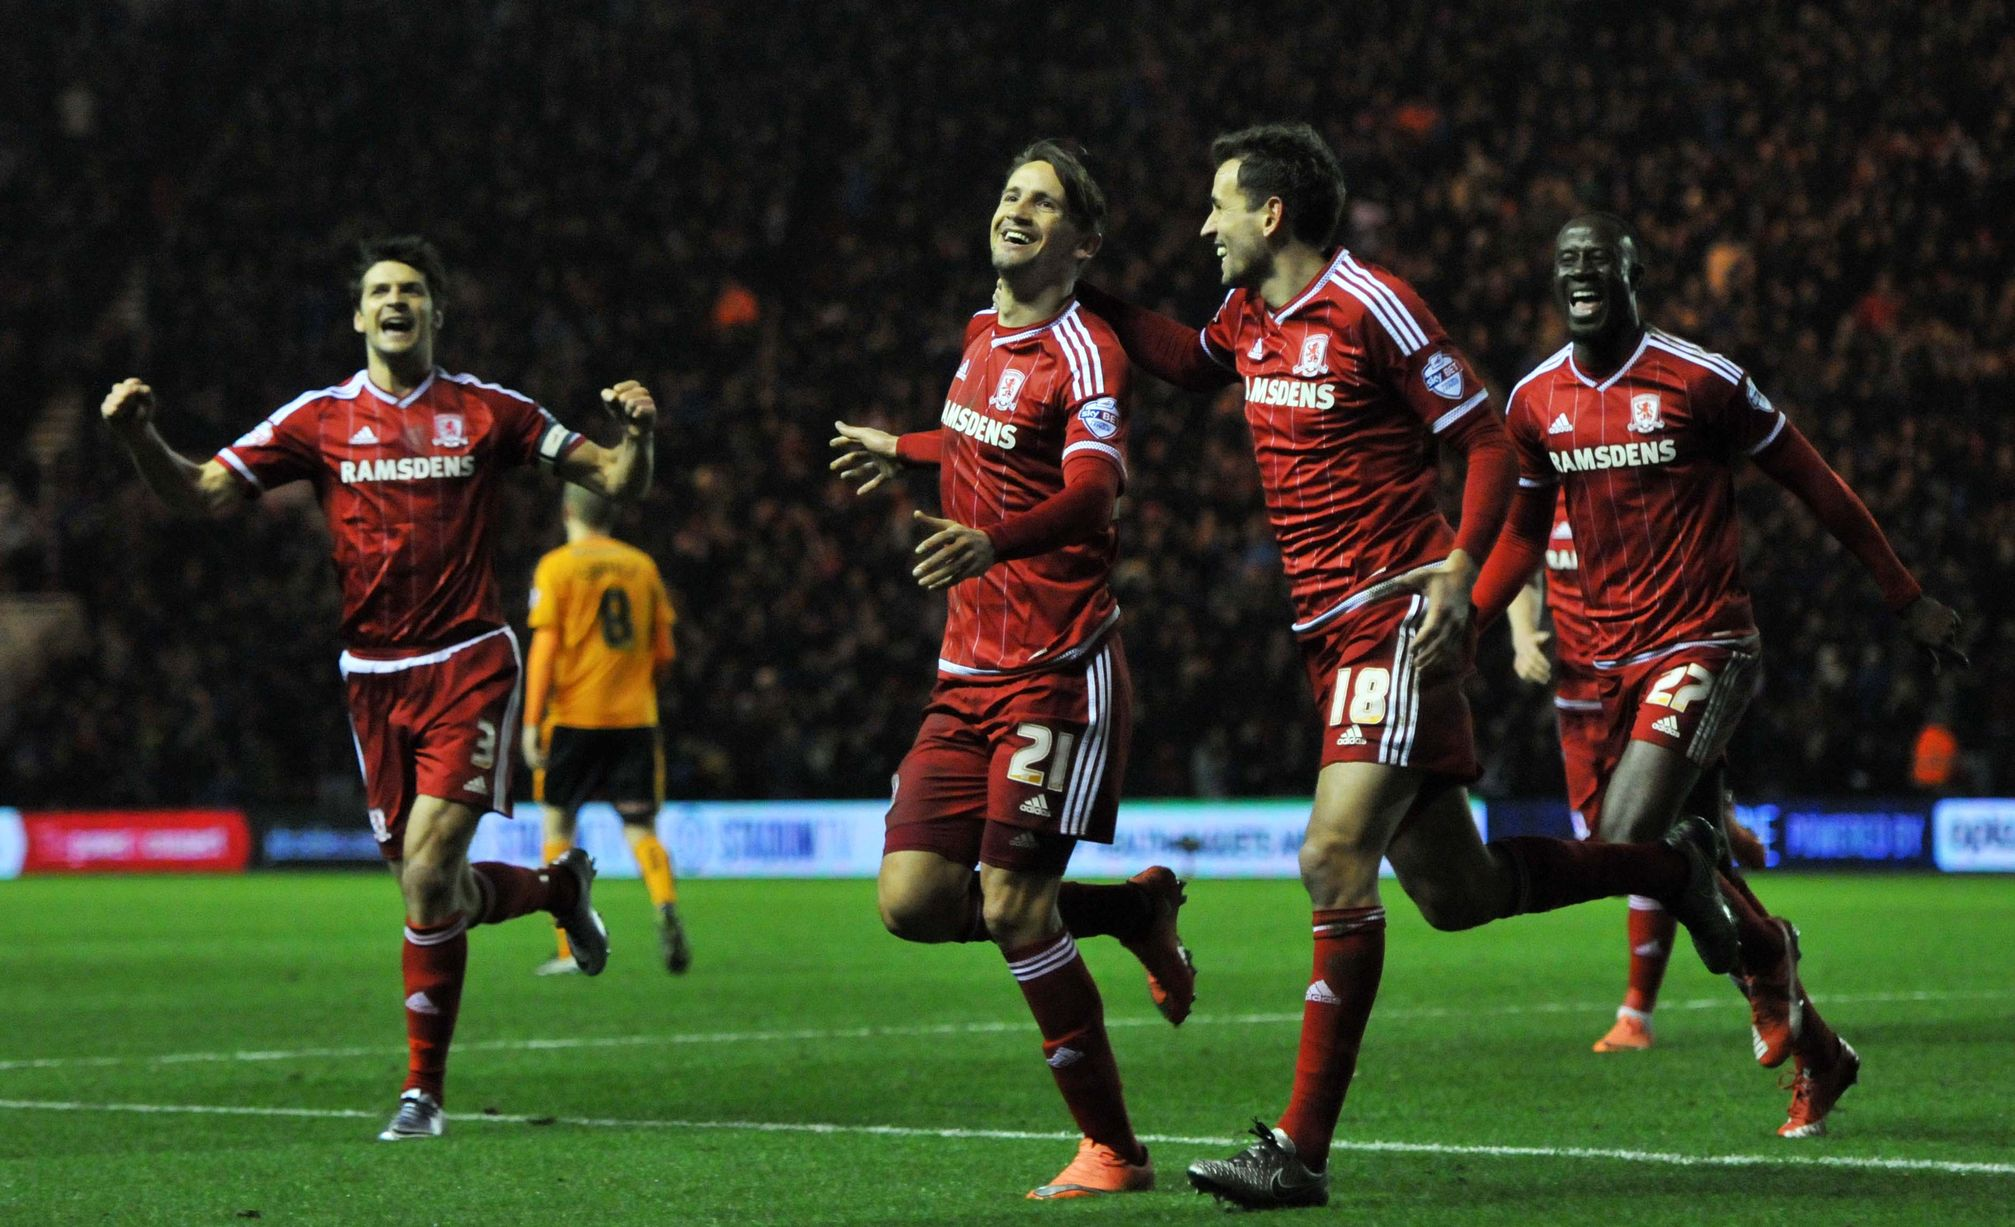 Guile and Goals - Is Gaston a Perfect Ten for Boro?